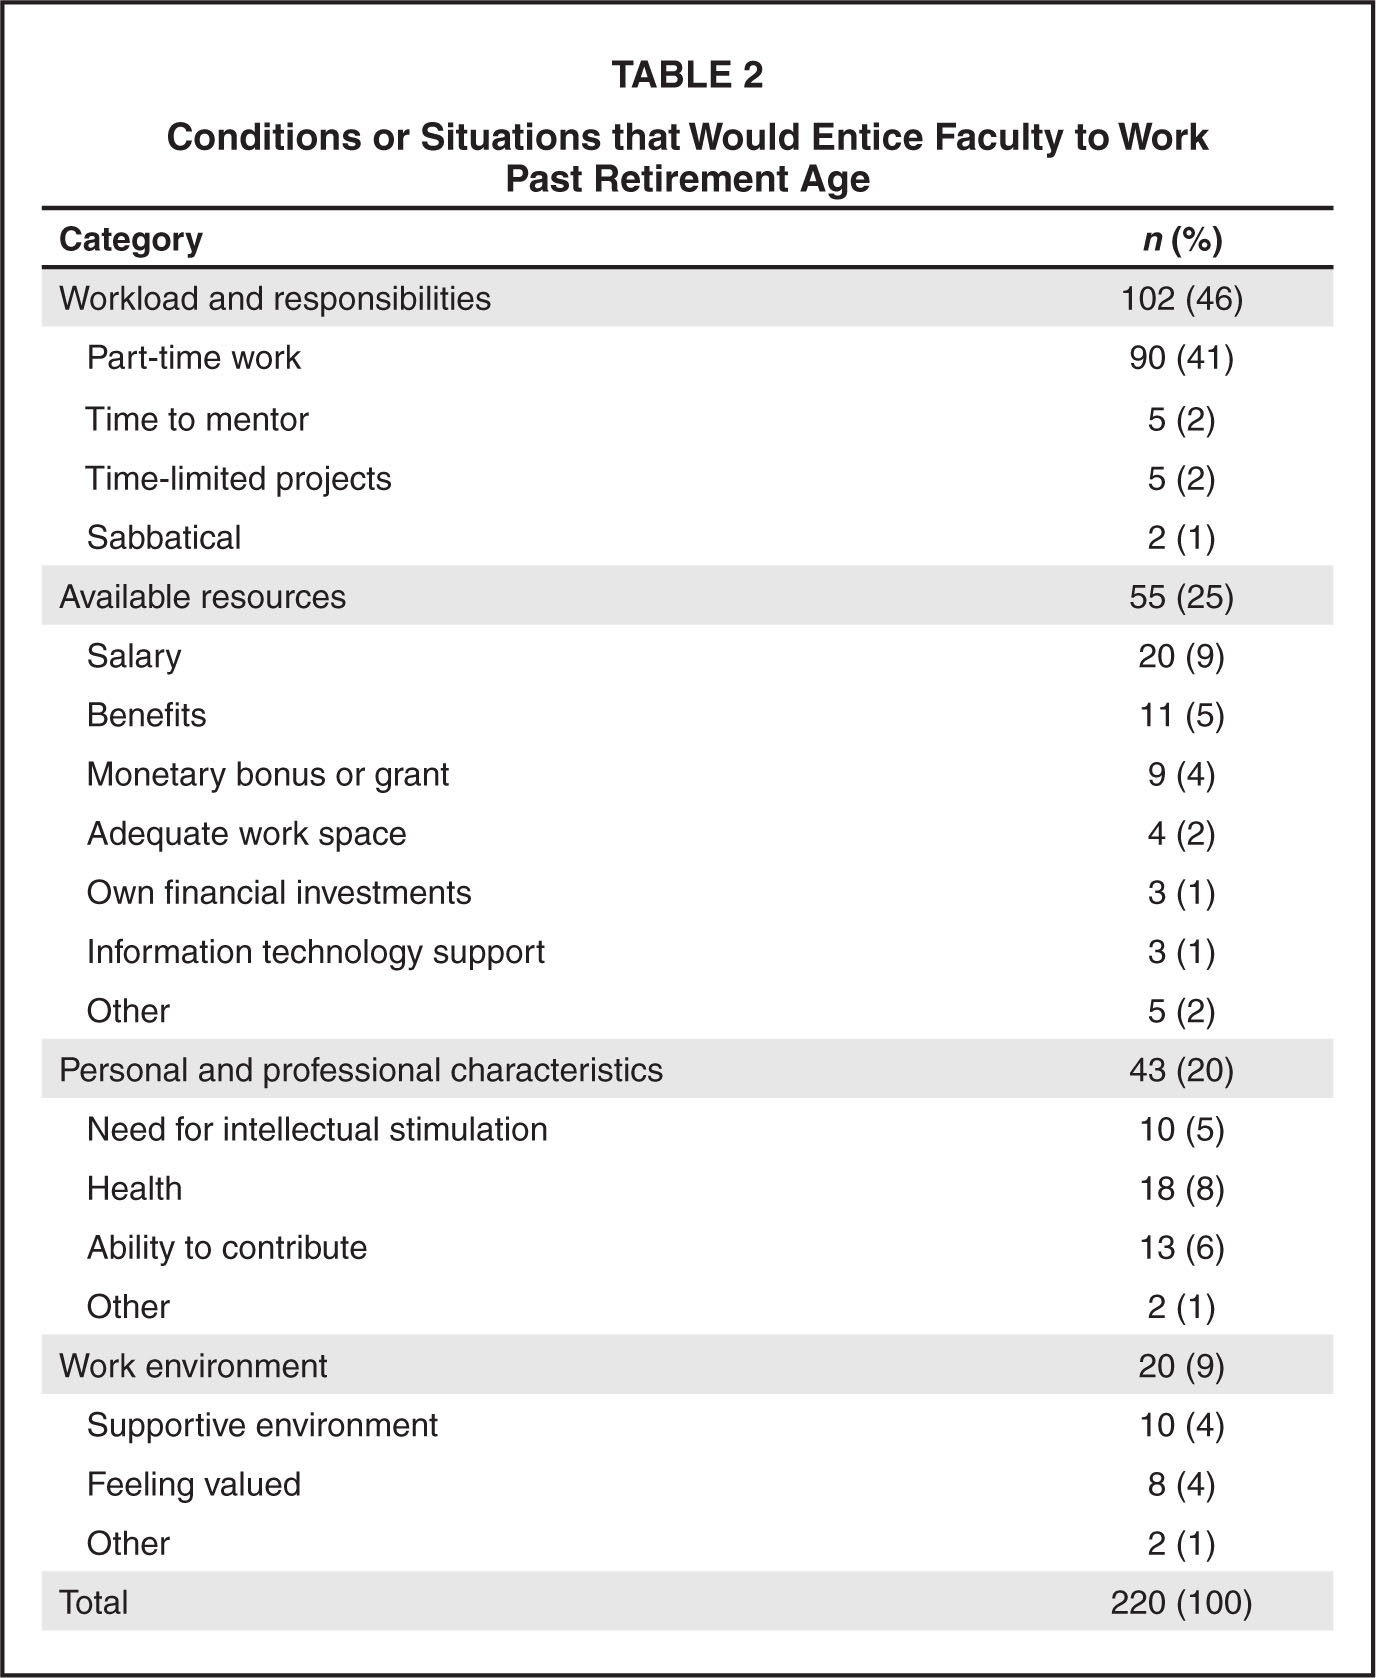 Conditions or Situations that Would Entice Faculty to Work past Retirement Age